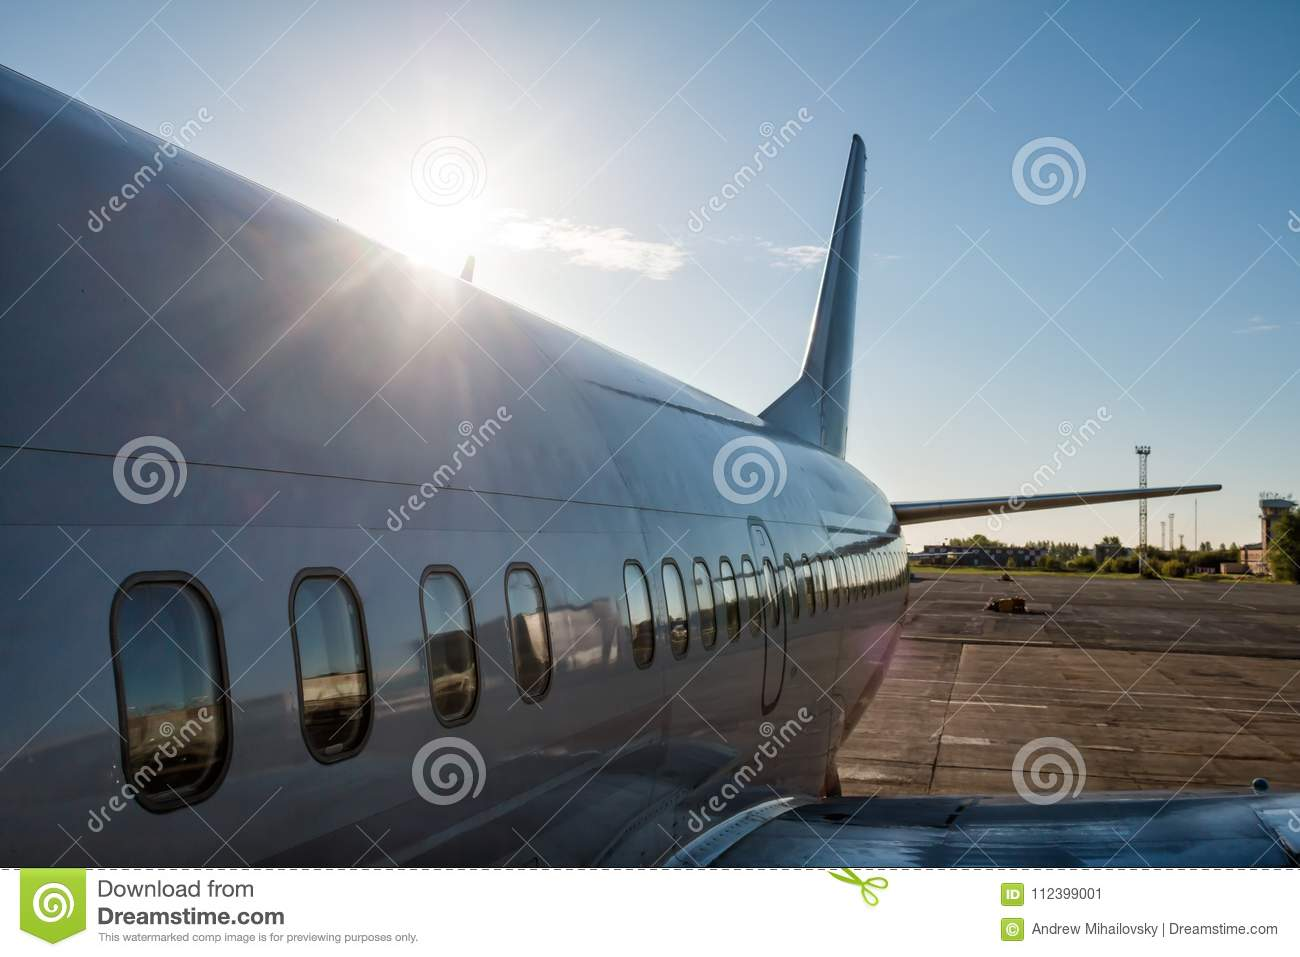 View from the boarding steps to the rear of the passenger plane in the rays of the rising sun